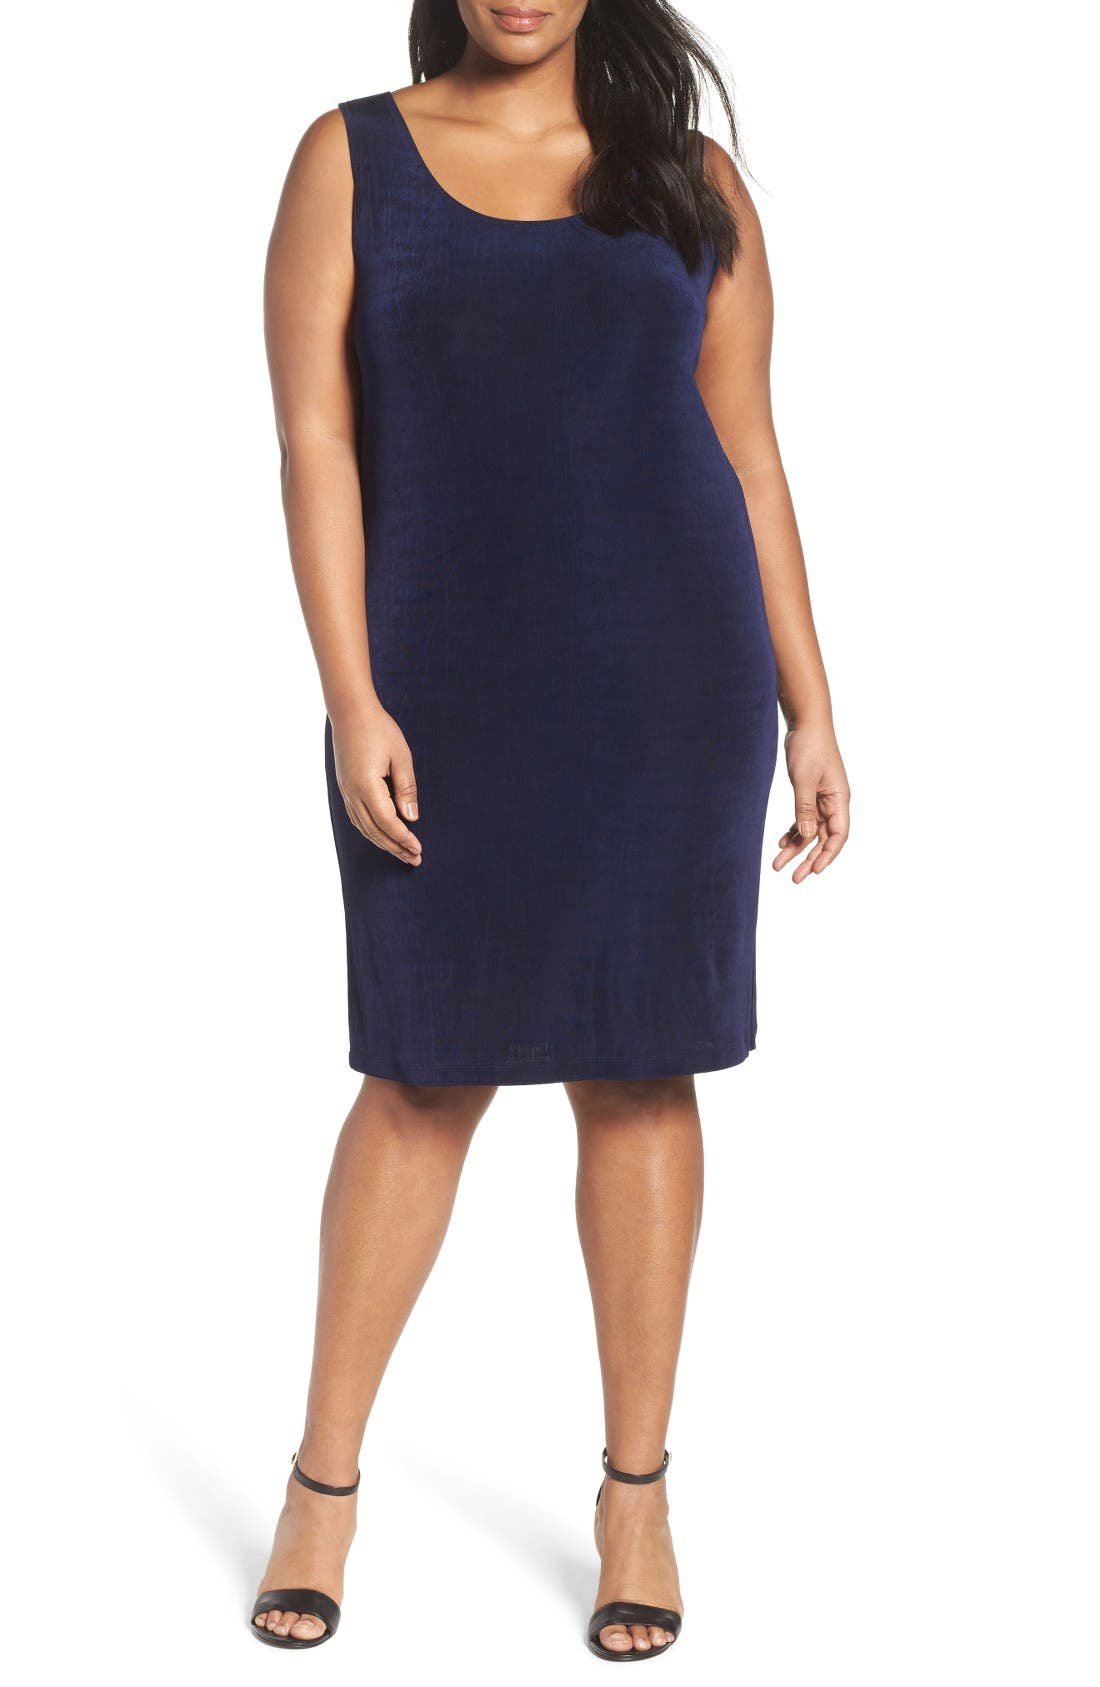 Vikki Vi Sleeveless Shift Dress (Plus Size)